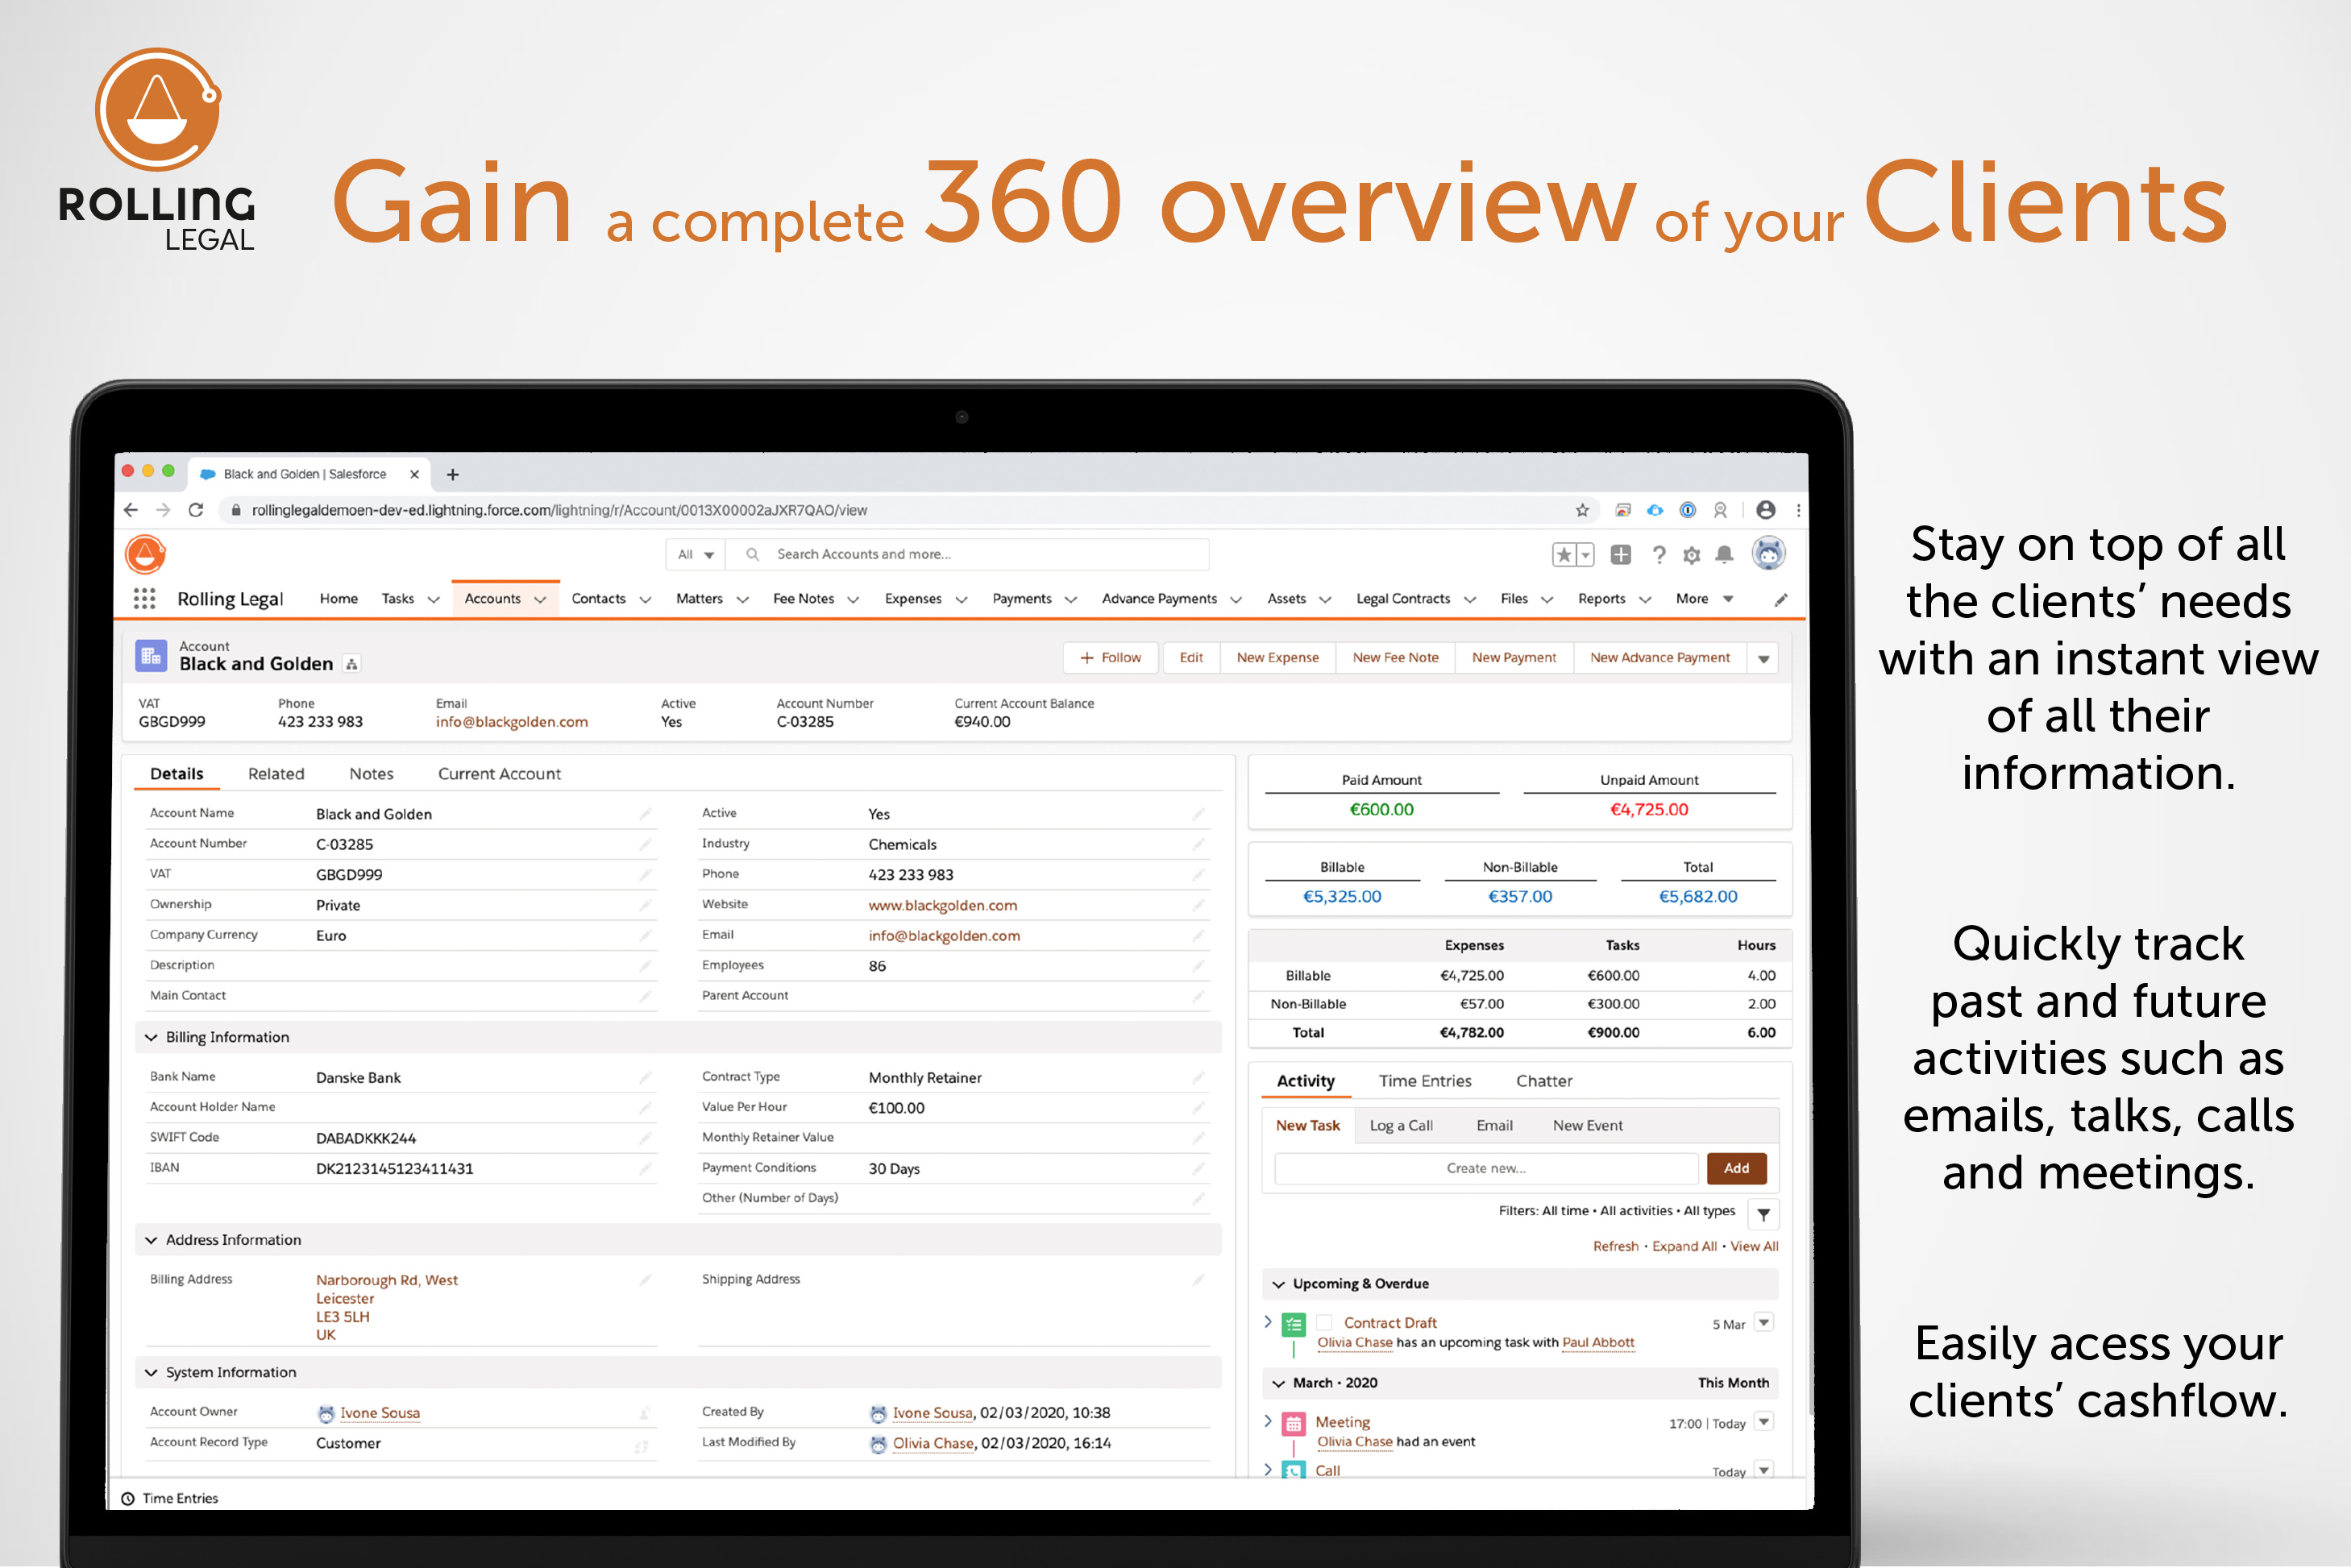 Rolling Legal: Gain a complete 360 overview of your Clients!